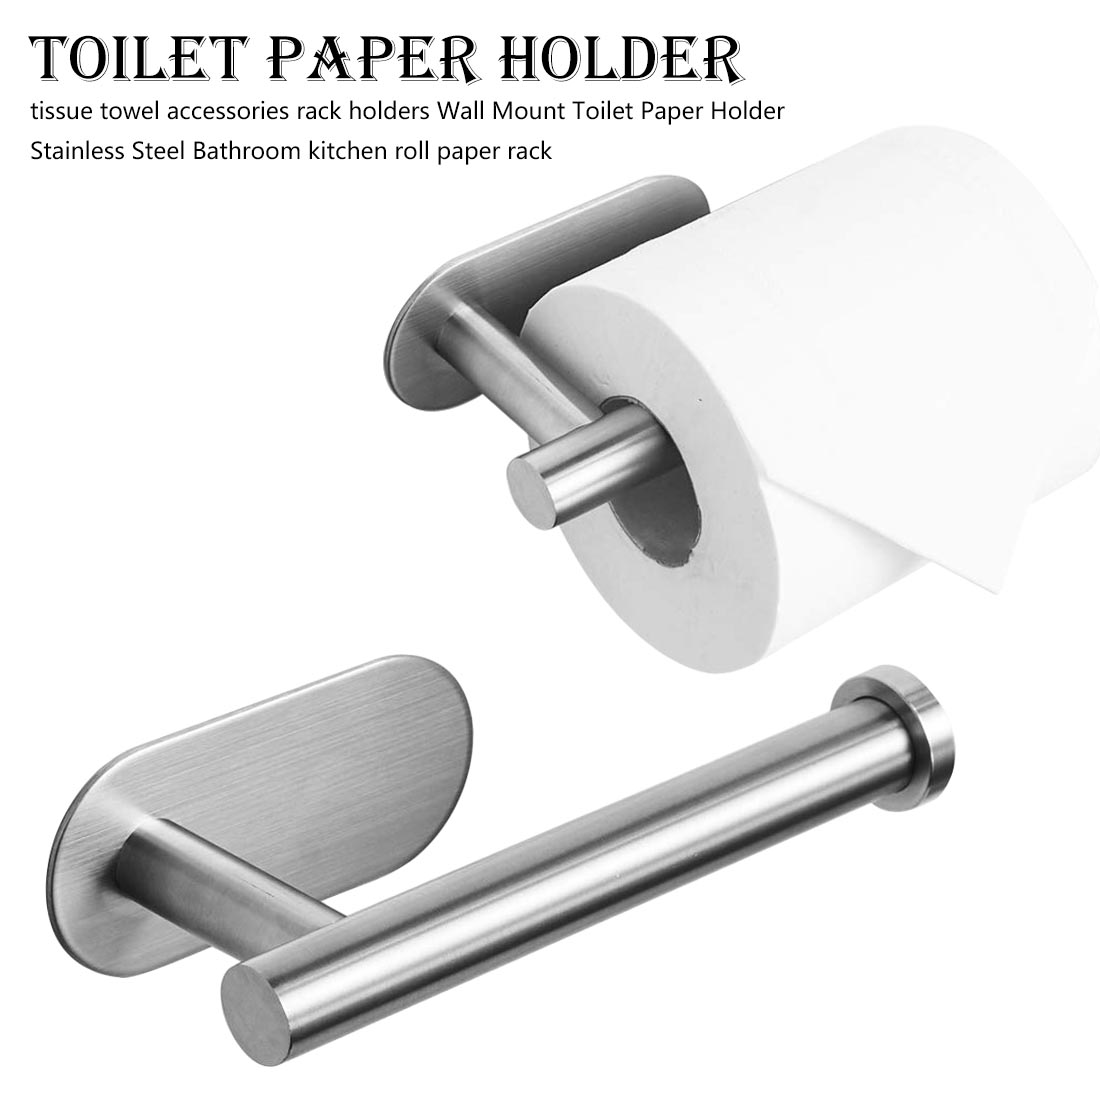 Kitchen Roll Paper Accessory Wall Mount Toilet Paper Holder Stainless Steel Bathroom Tissue Towel Accessories Rack Holders